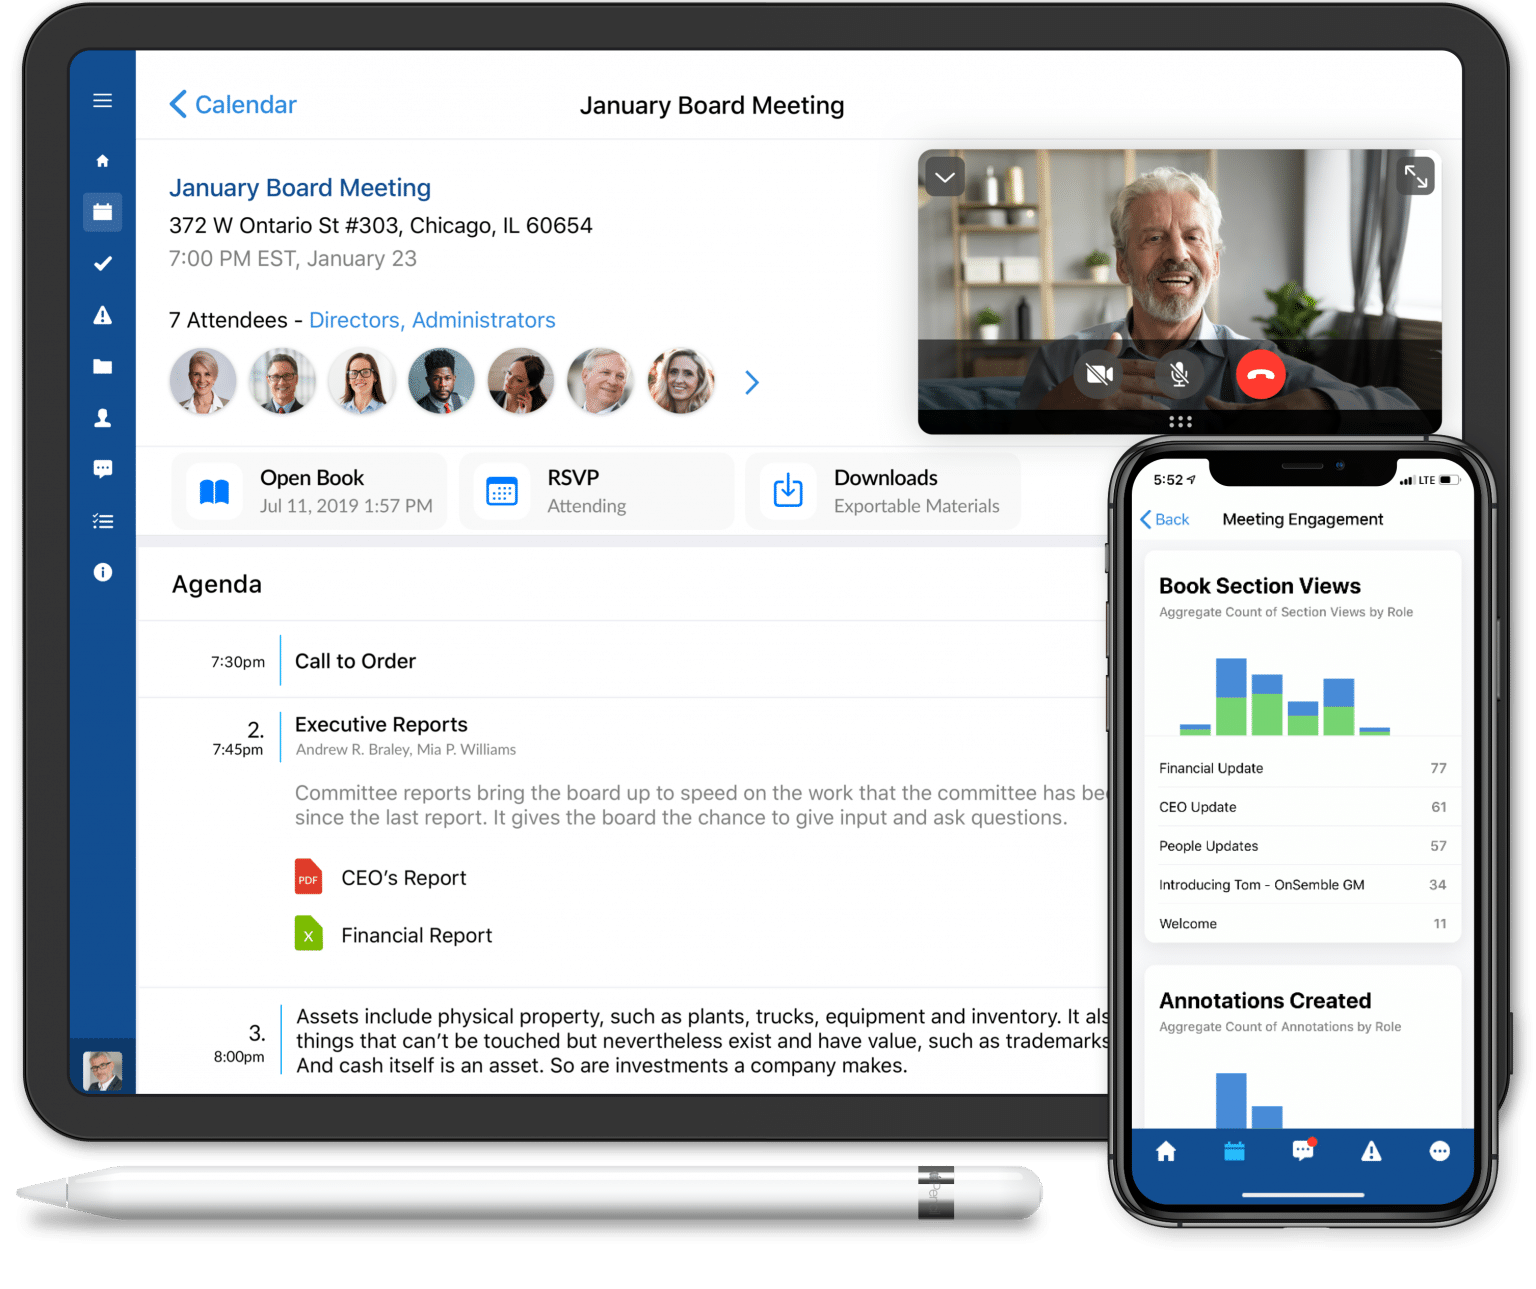 OnBoard Board Management Software for Virtual Meetings 2.0 @2x